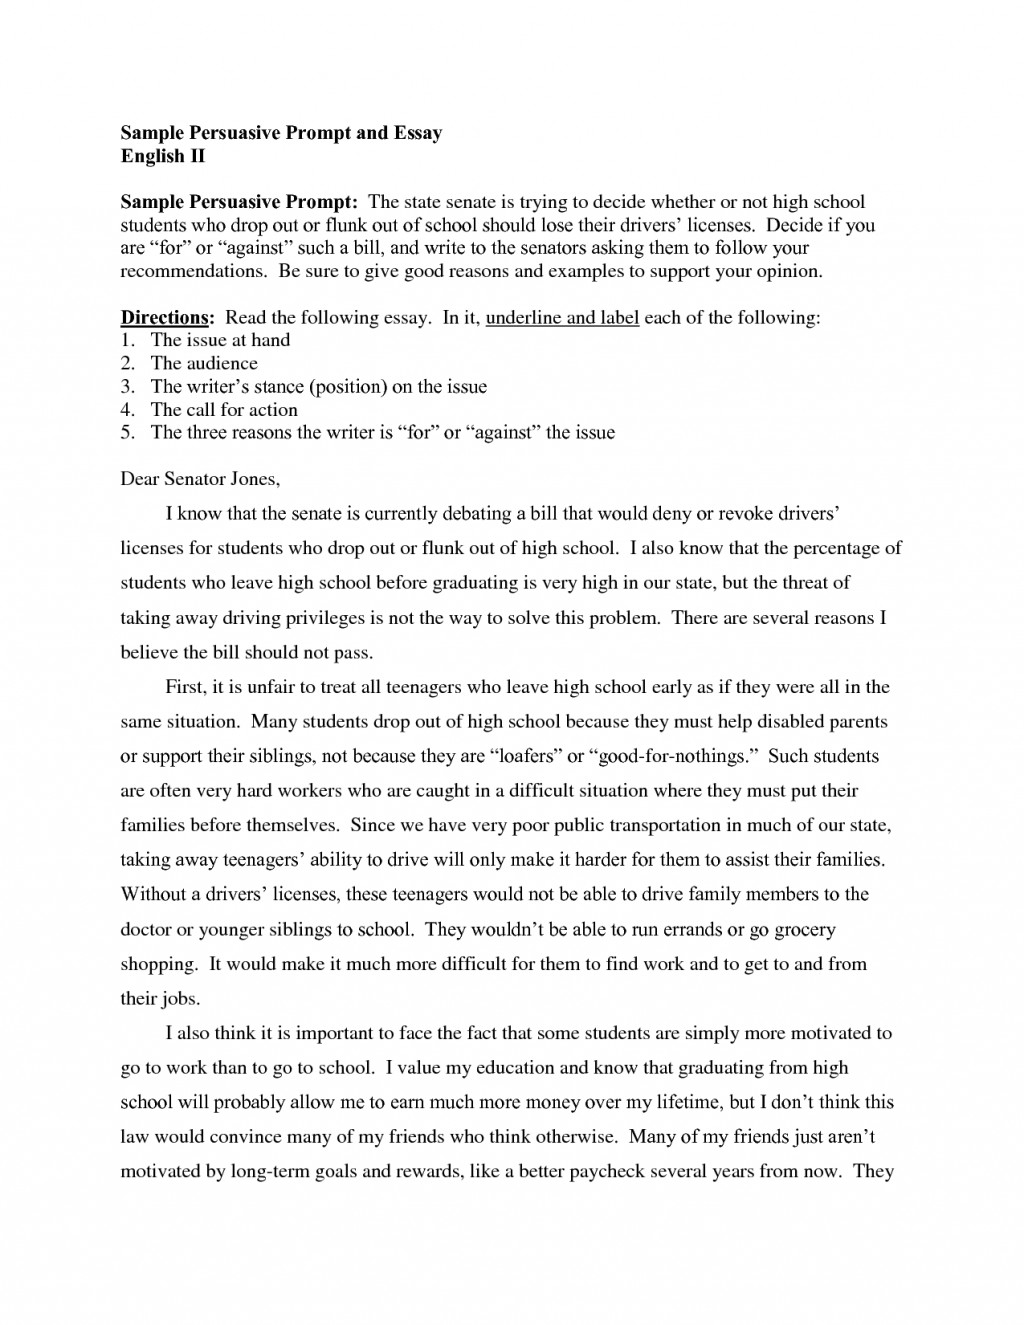 011 Research Paper Easy Topics For Middle School Students Persuasive Essay High Sample Ideas Highschool Good Prompt Funny Fun List Of Seniors Writing Impressive Large